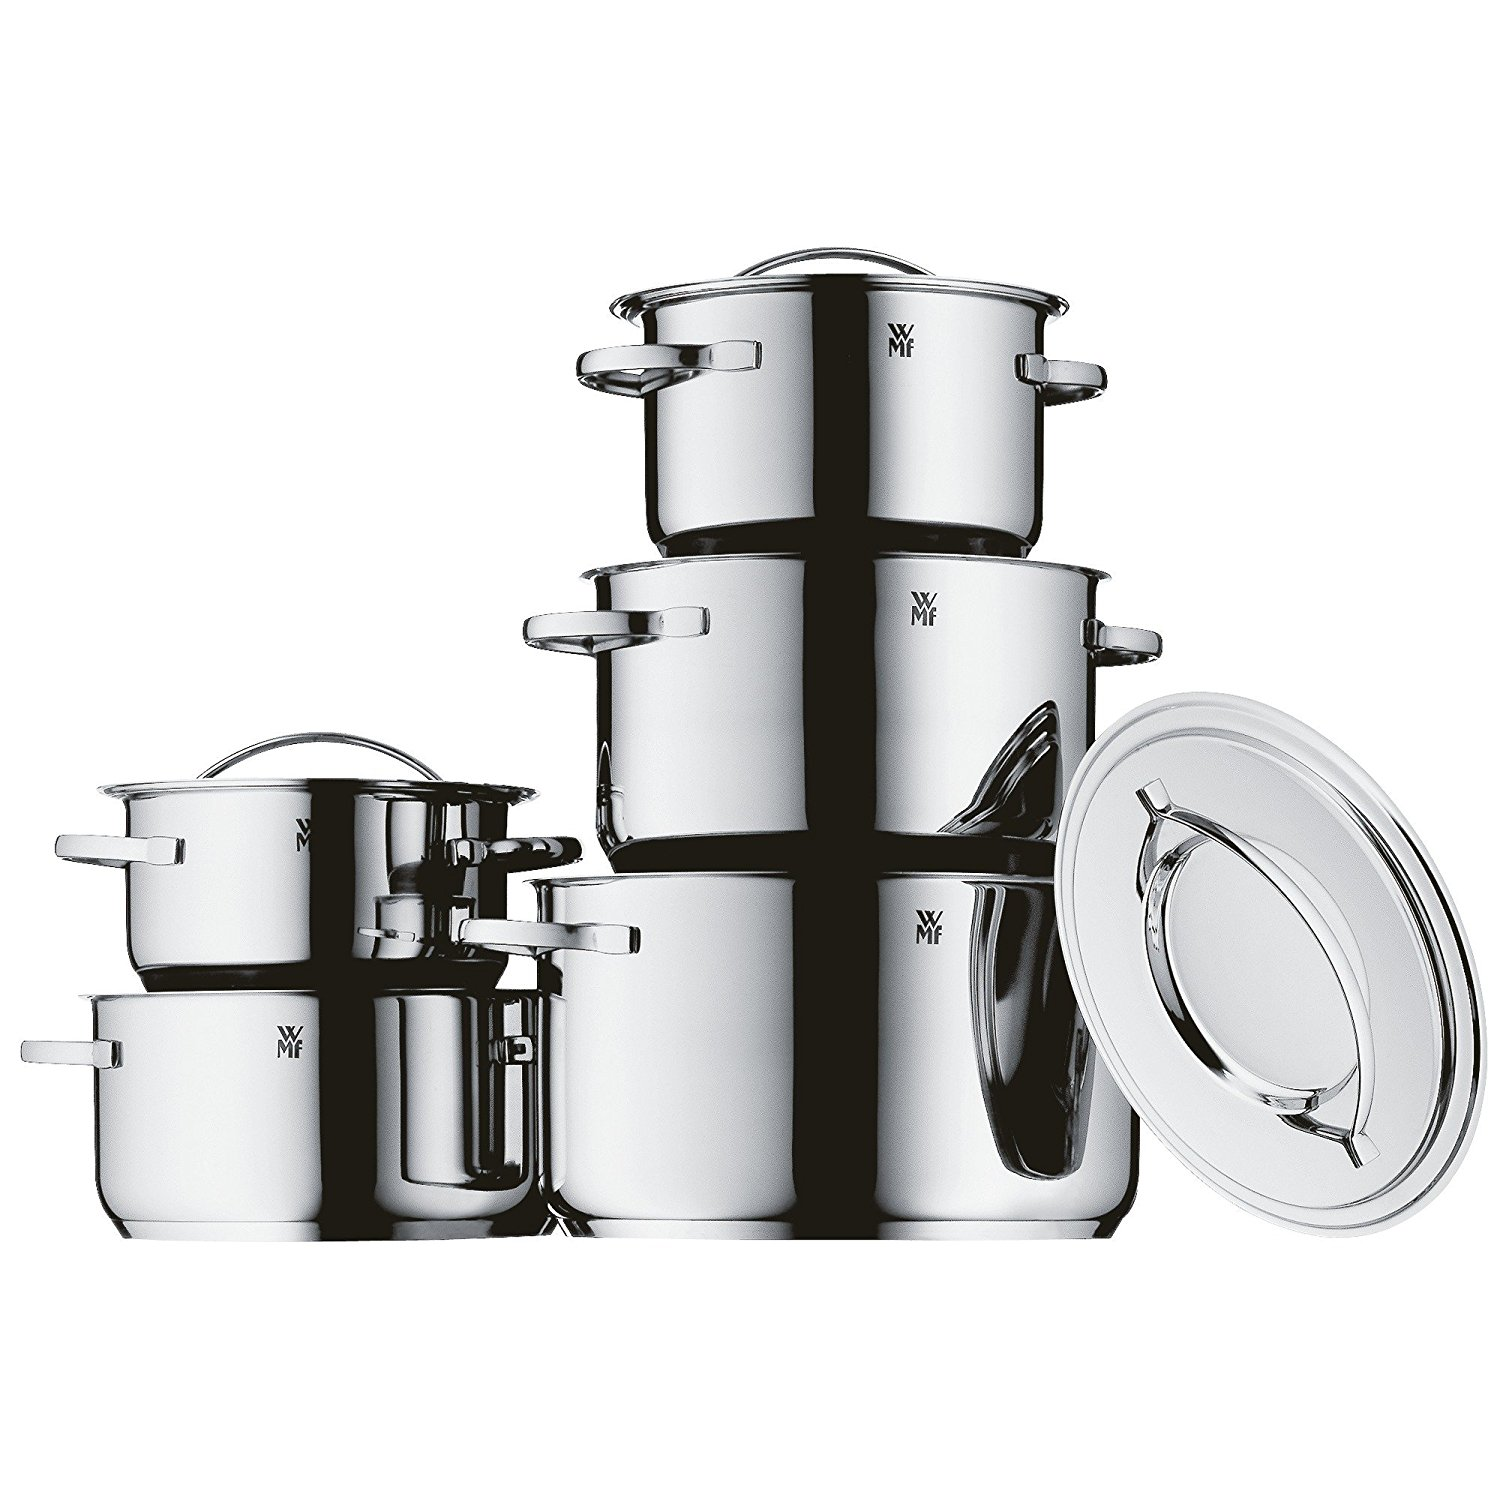 WMF Topf Set amazon